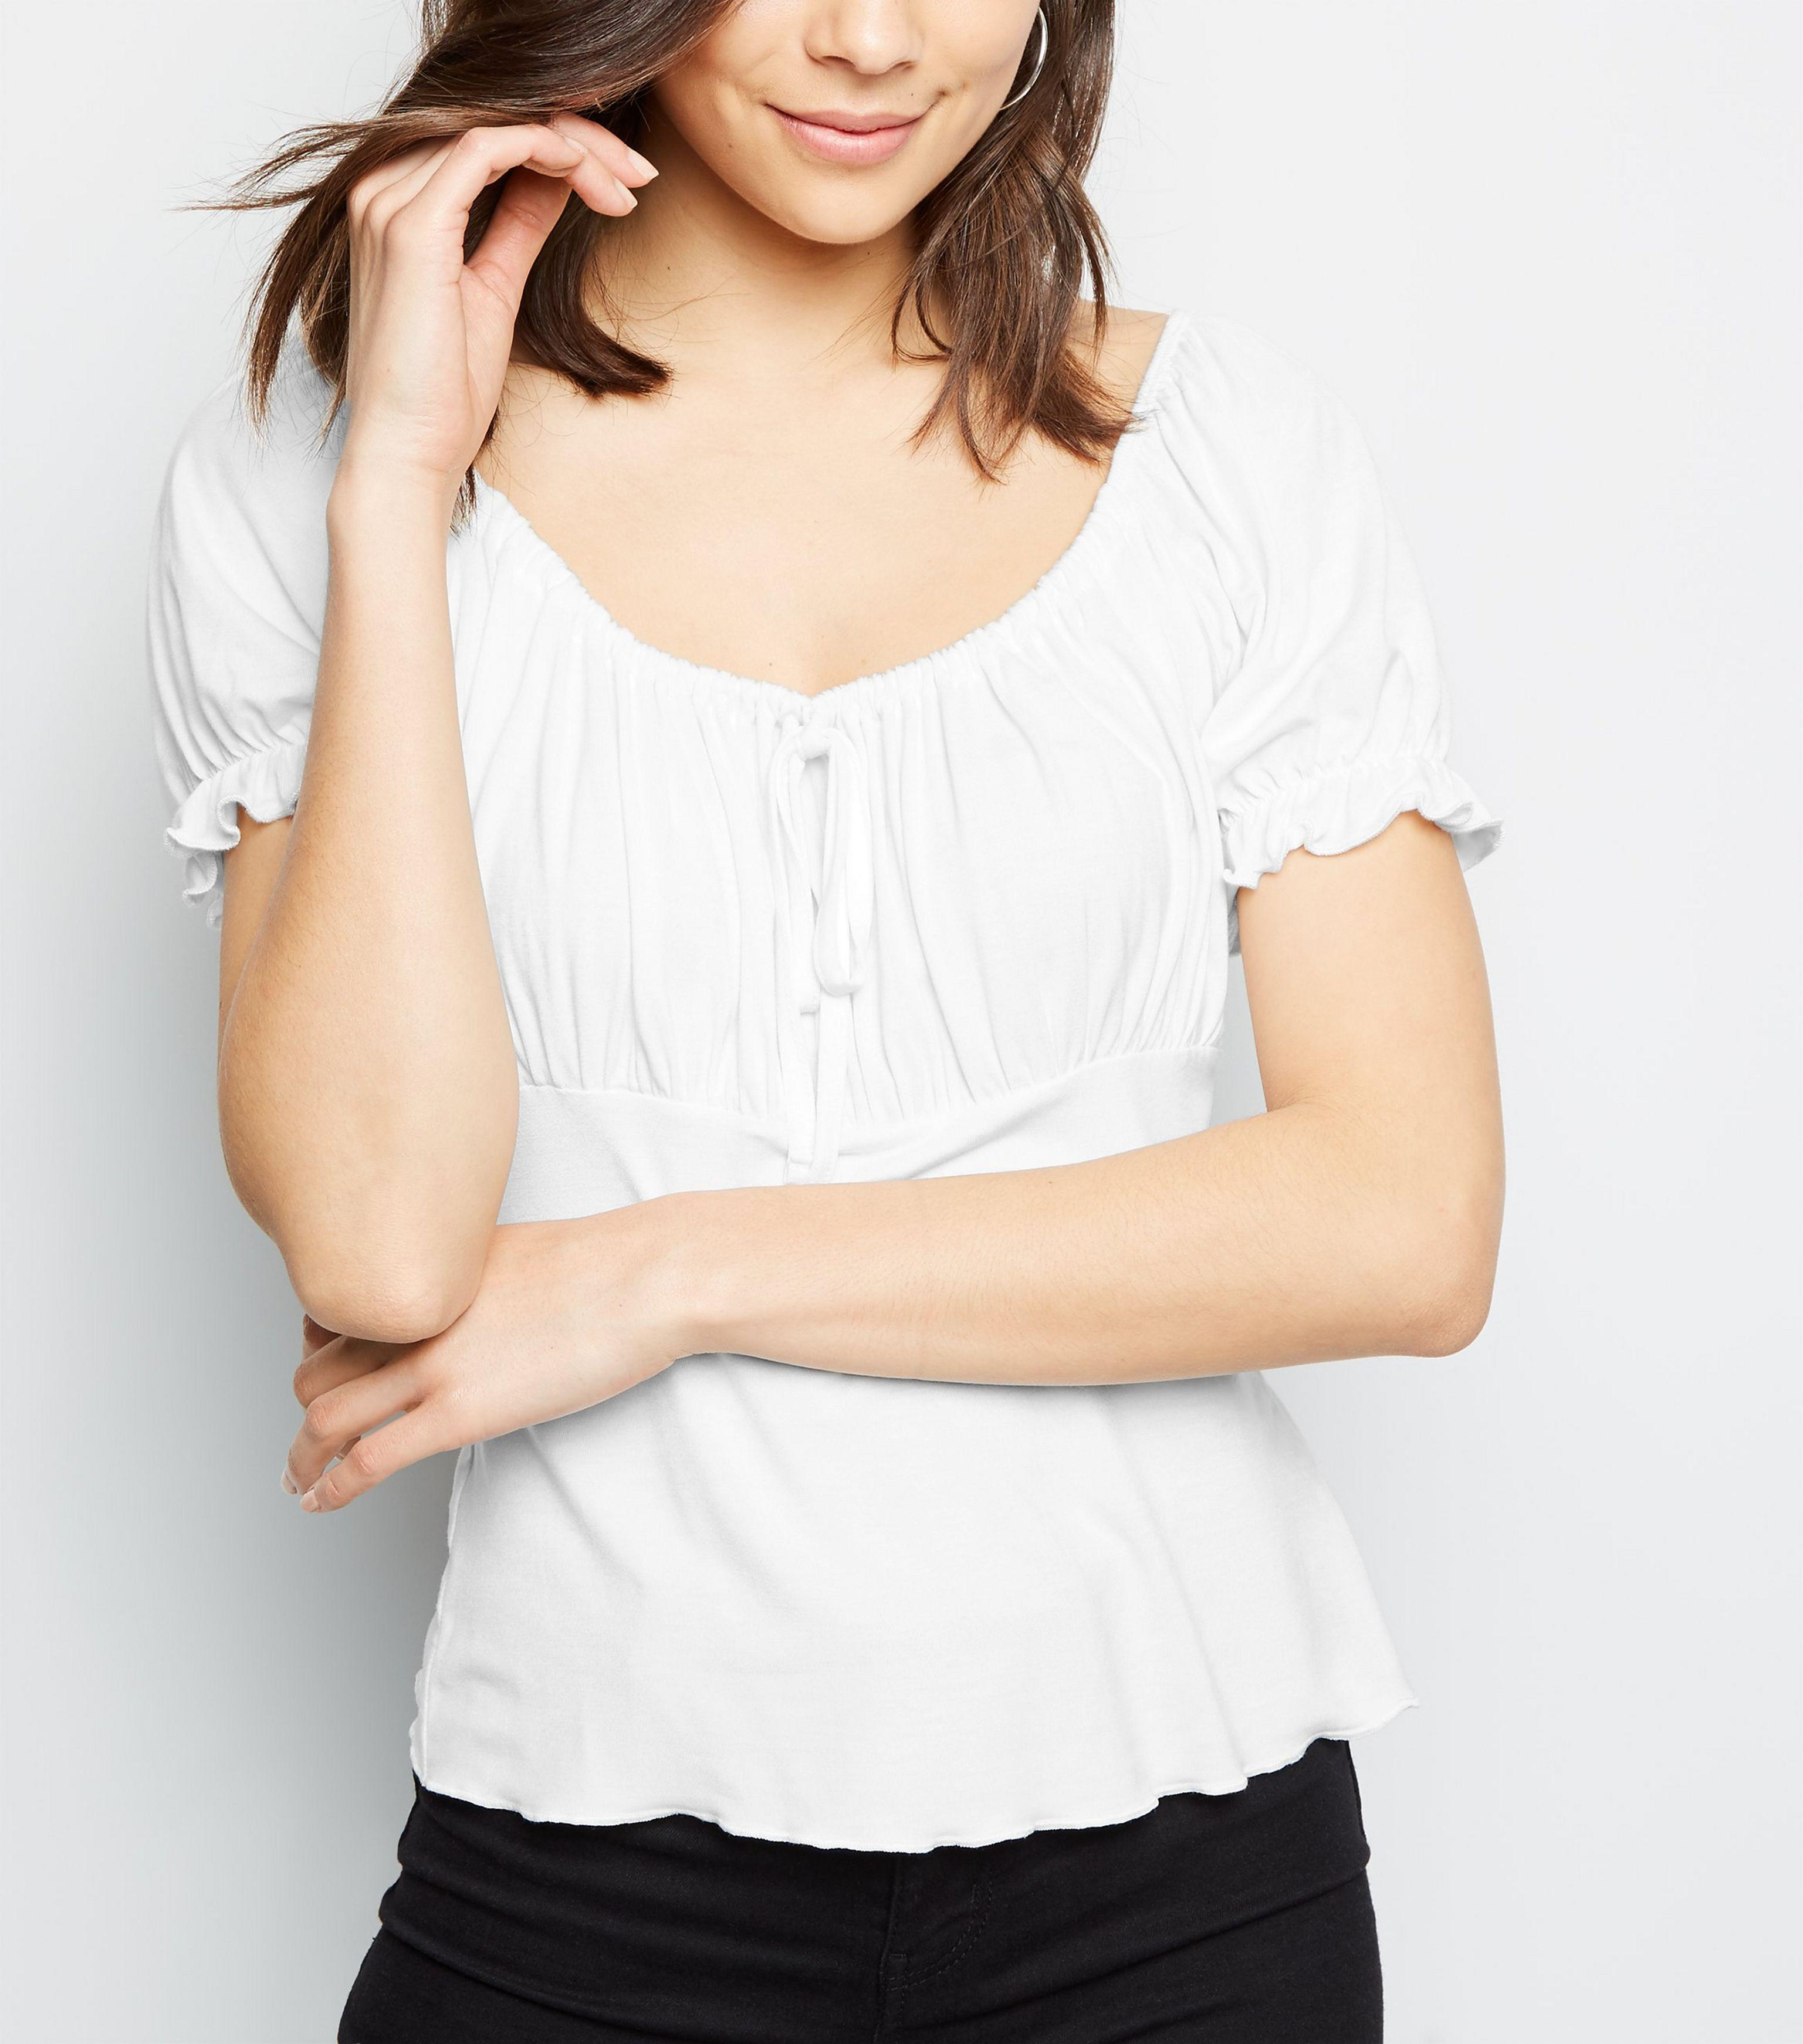 d2084b46001 New Look Off White Puff Sleeve Milkmaid Top in White - Lyst